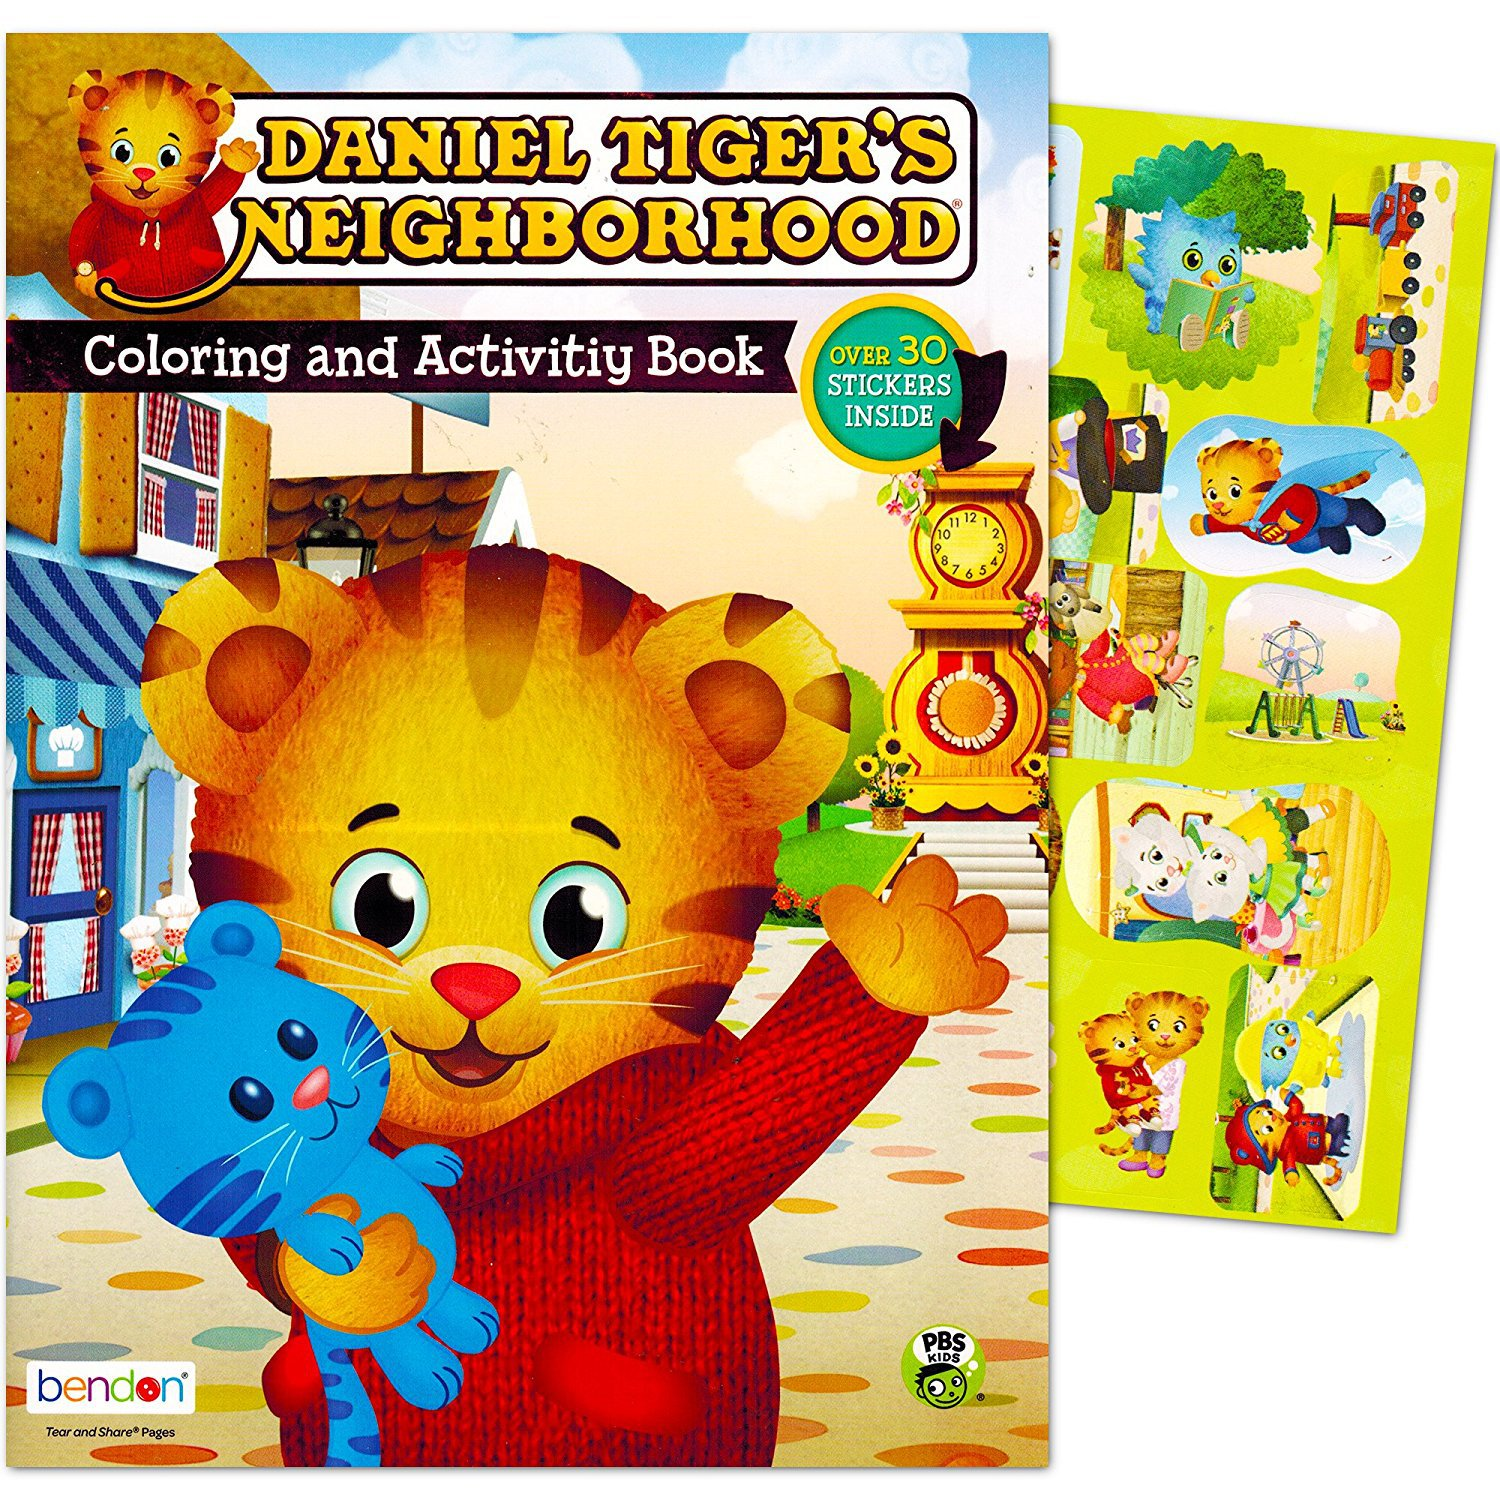 Daniel Tiger's Neighborhood Coloring and Activity Book - Over 30 Stickers Inside